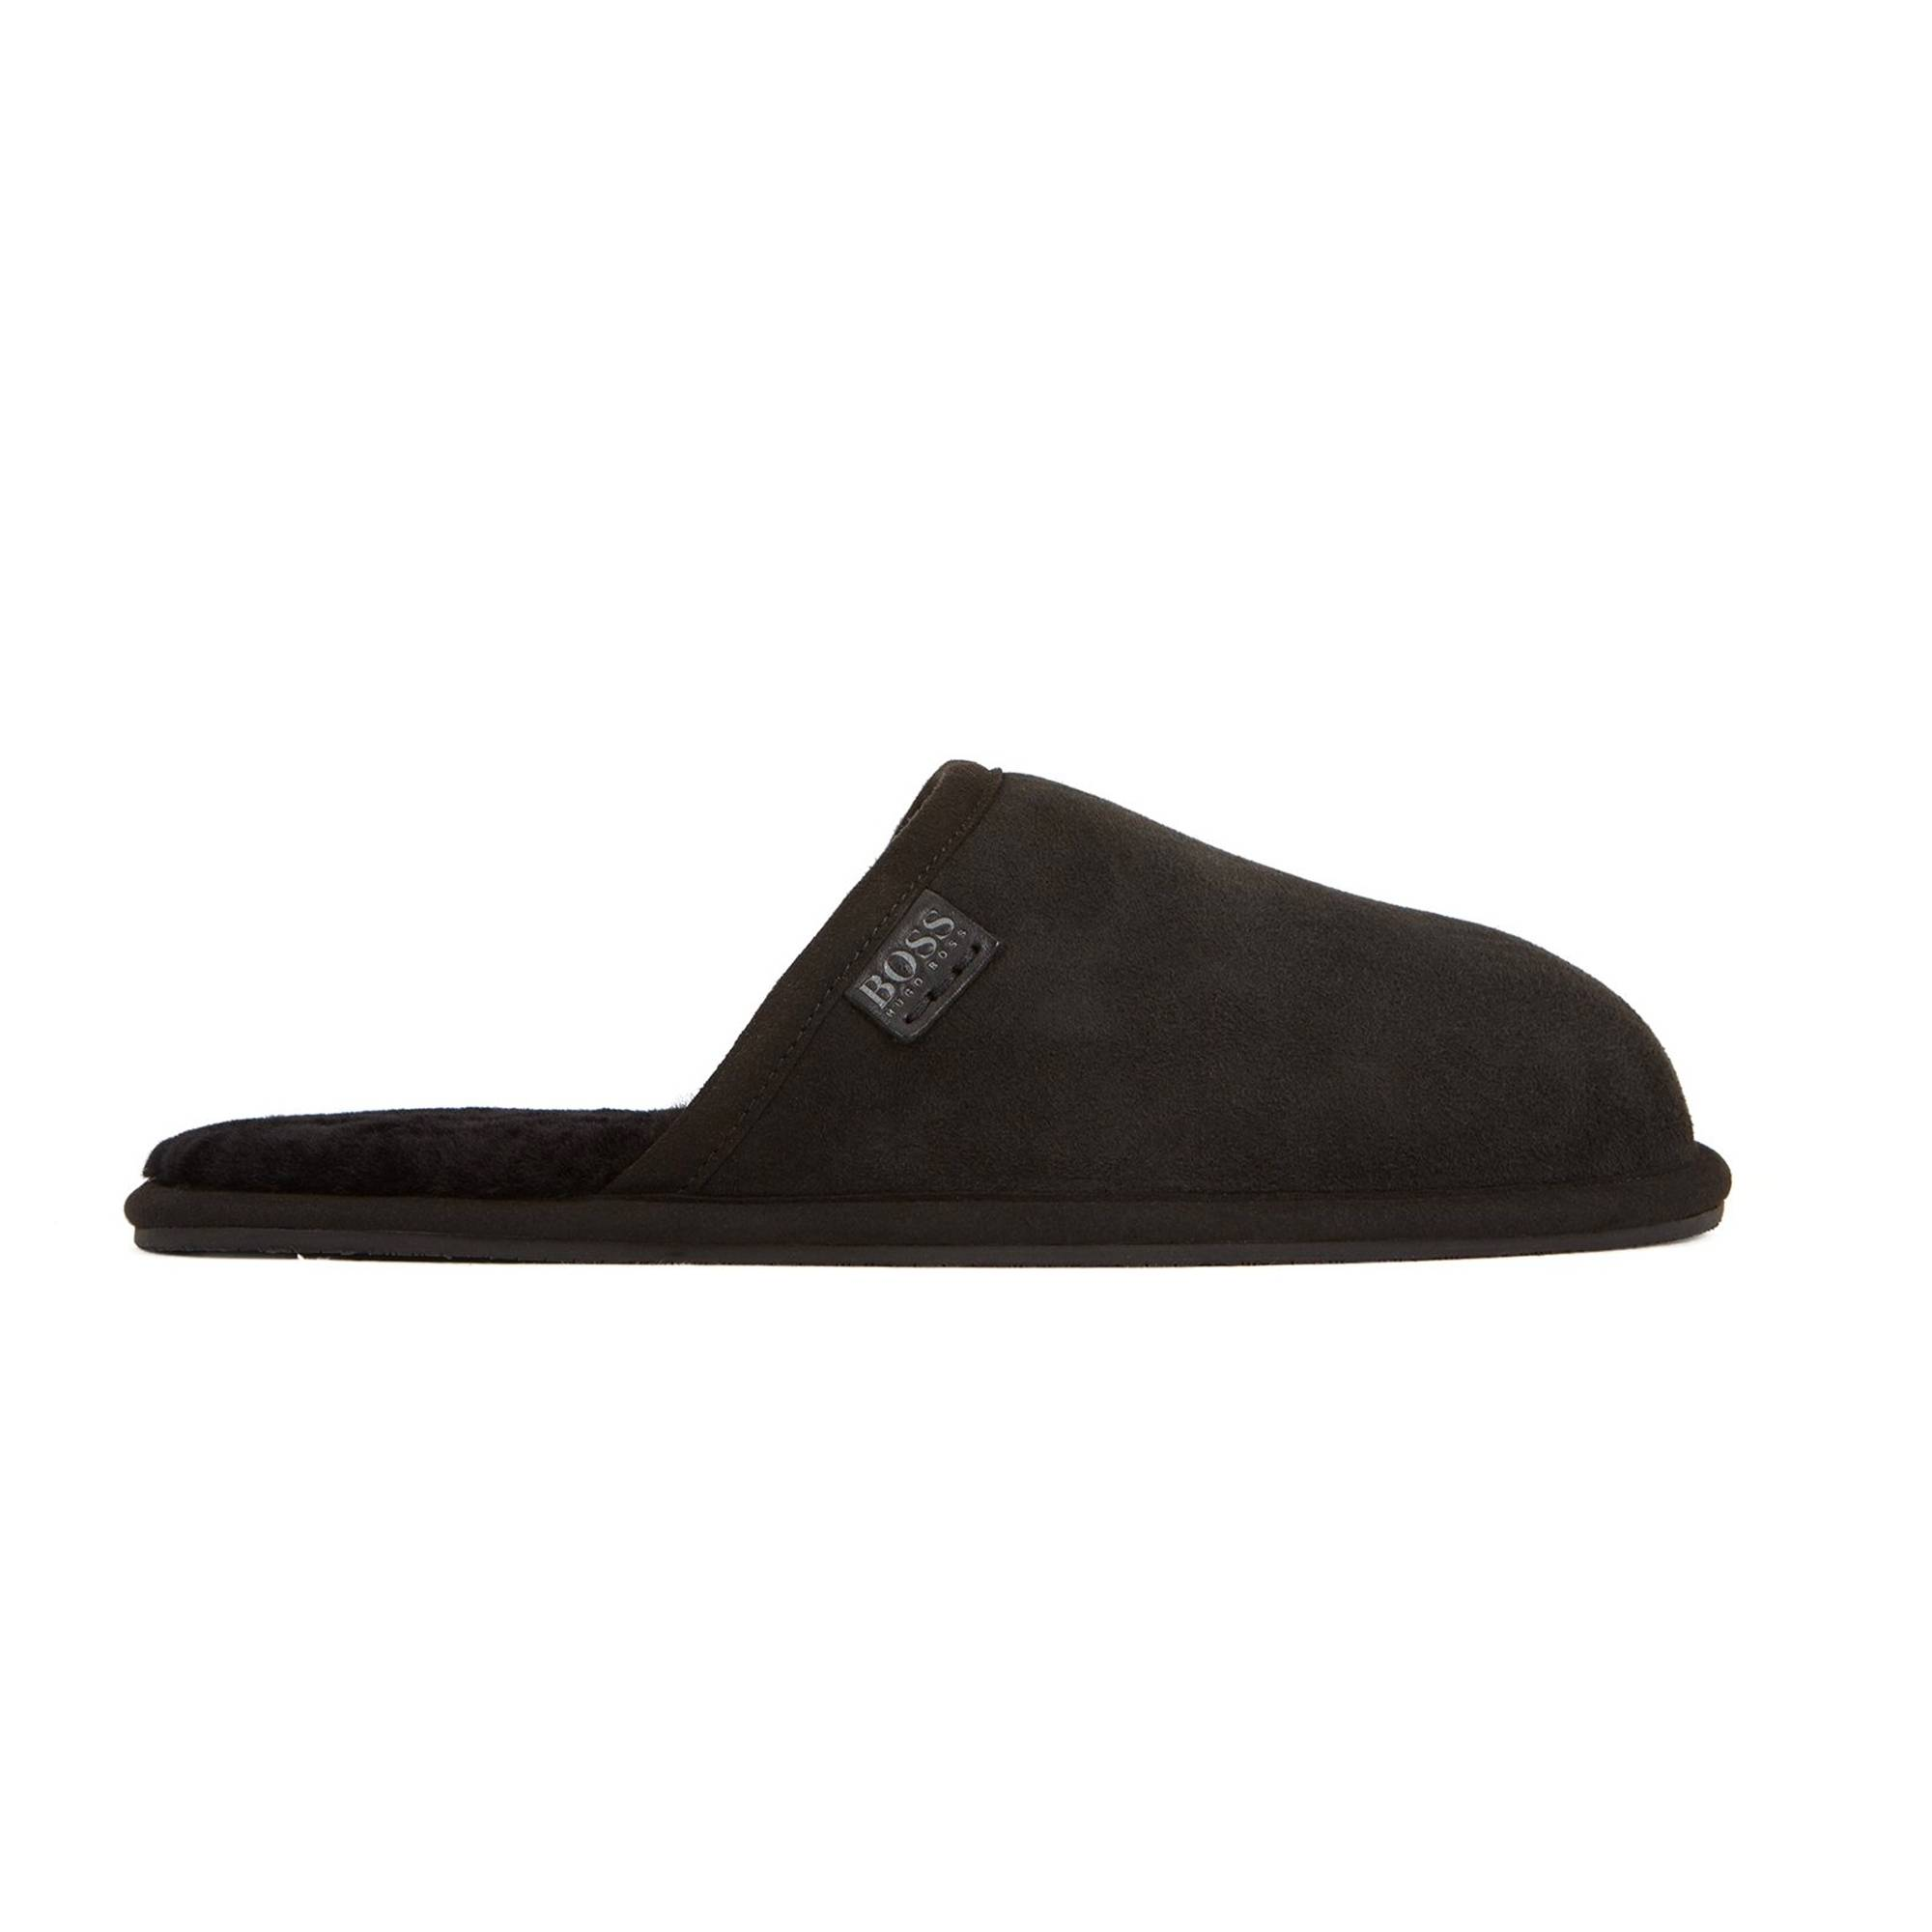 BOSS home slippers   Black   50420914-001